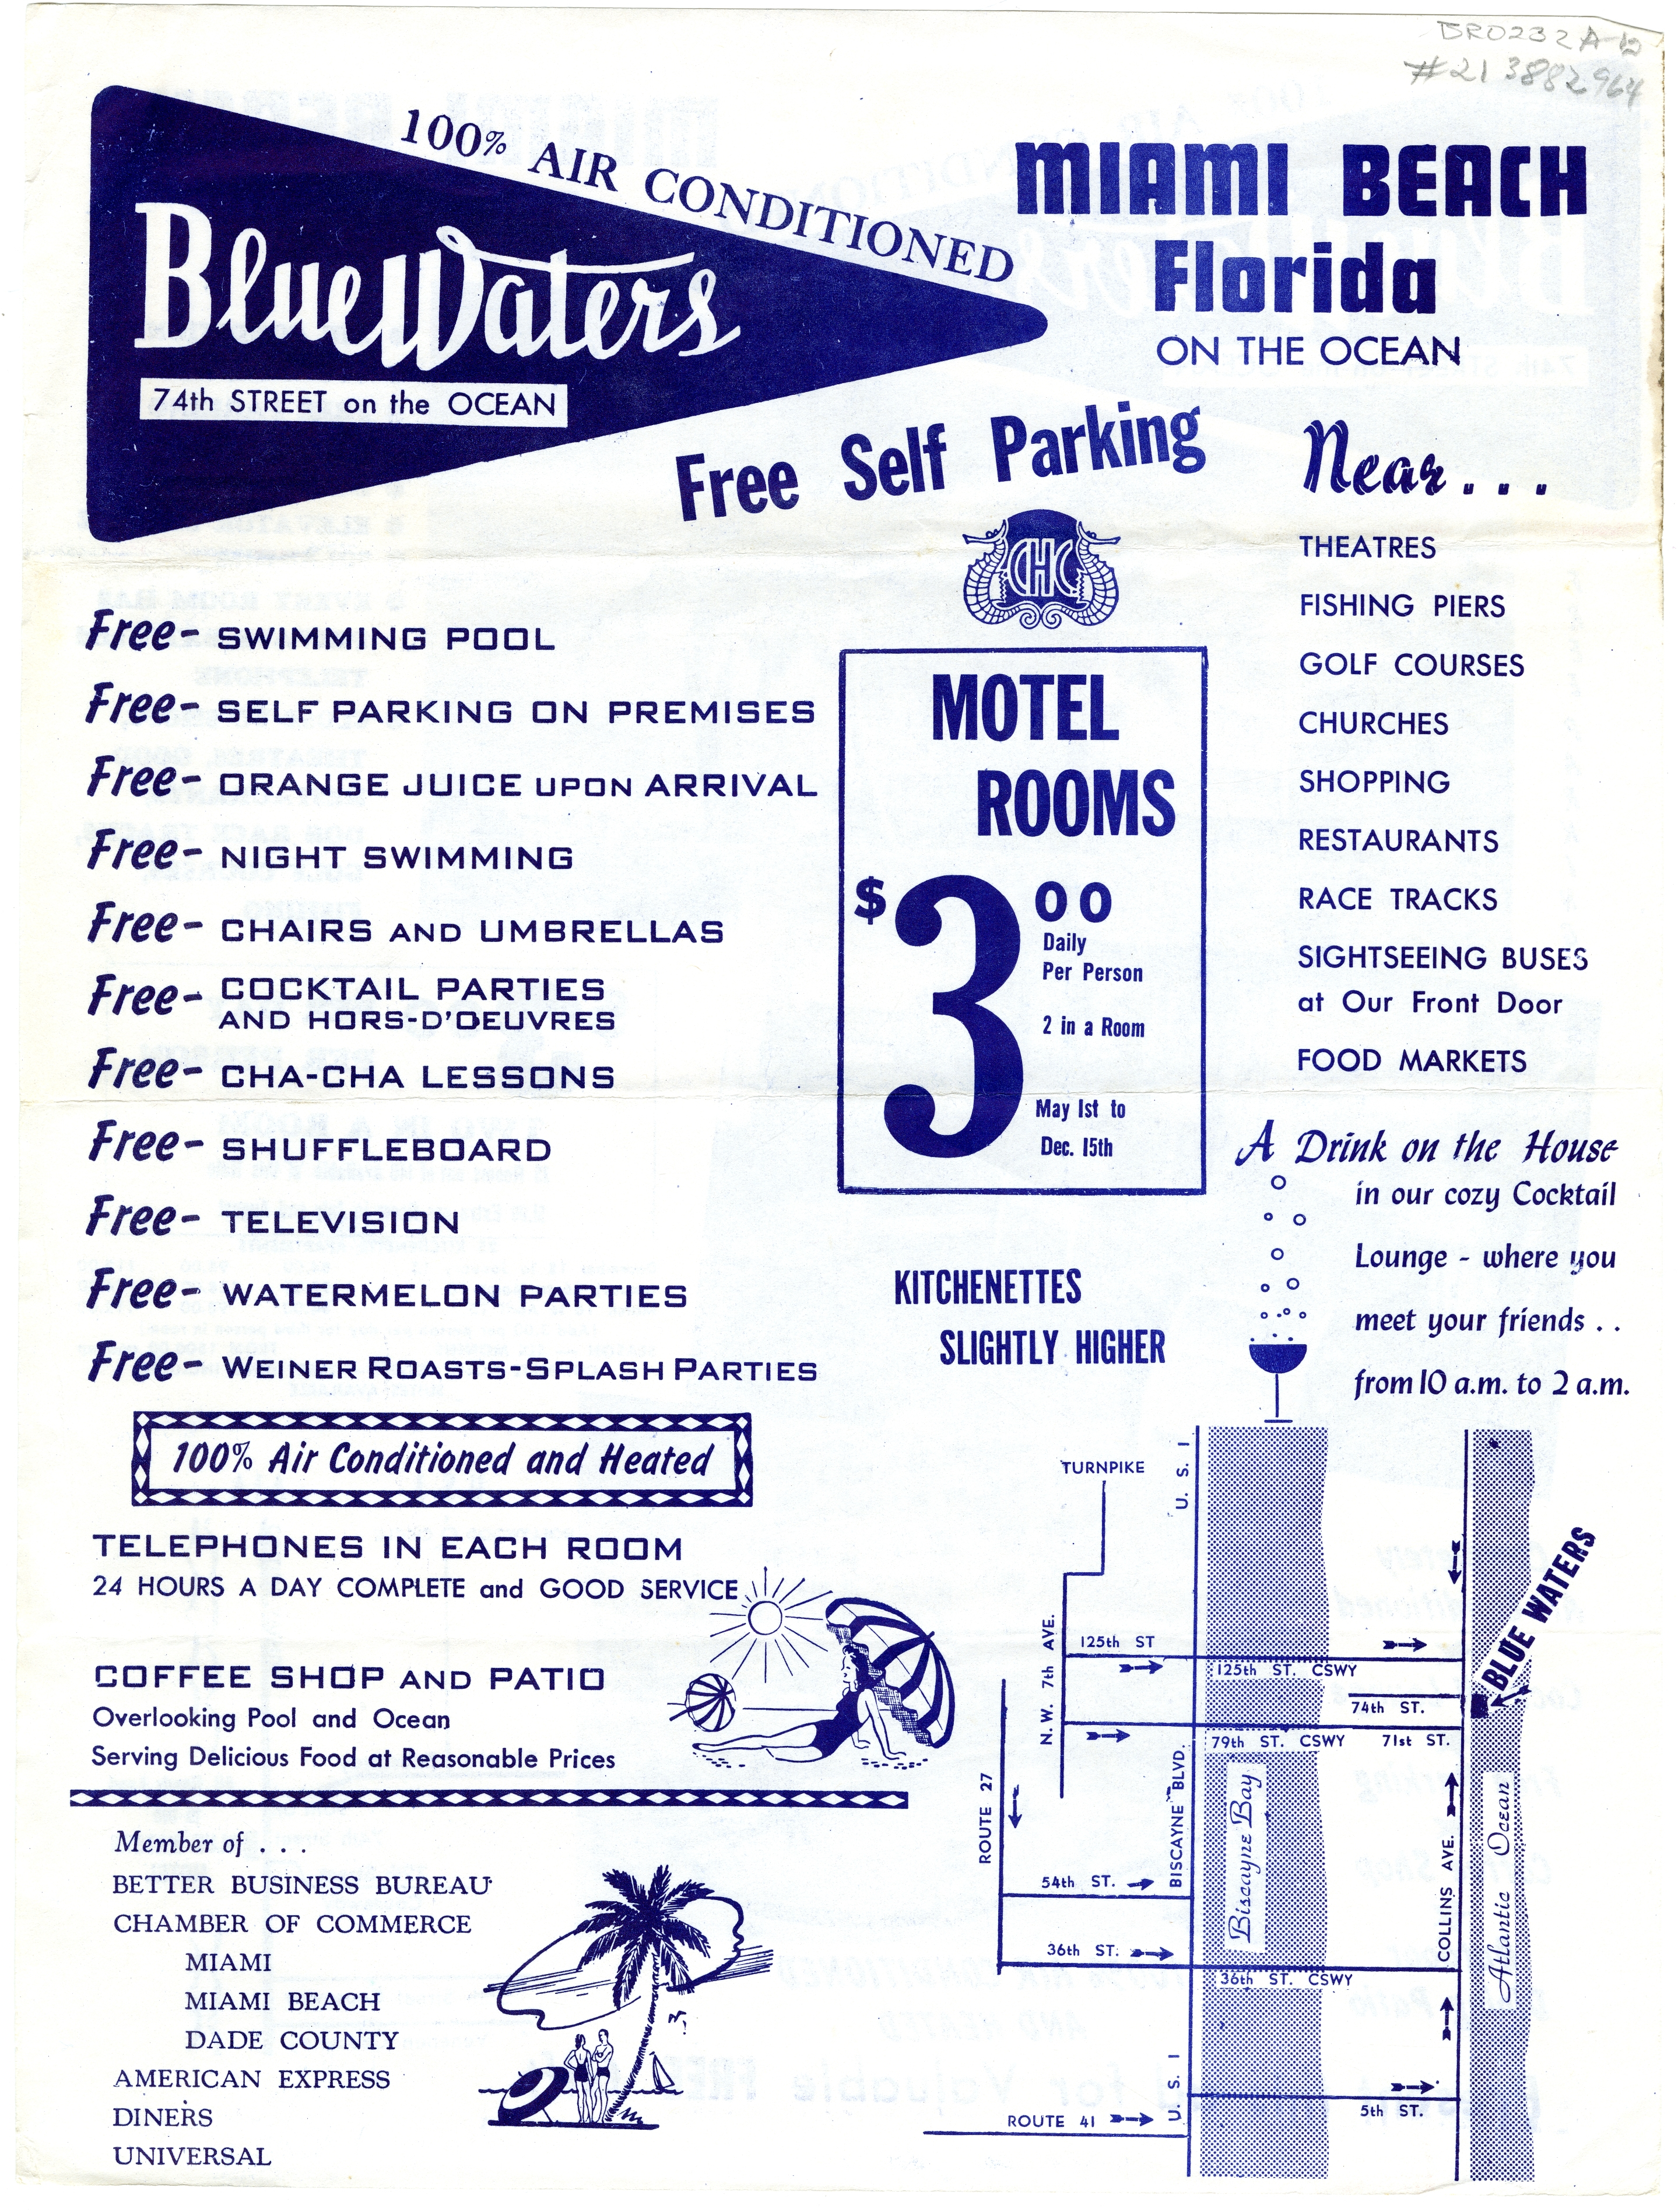 Blue Waters Hotel, Miami Beach, Florida.